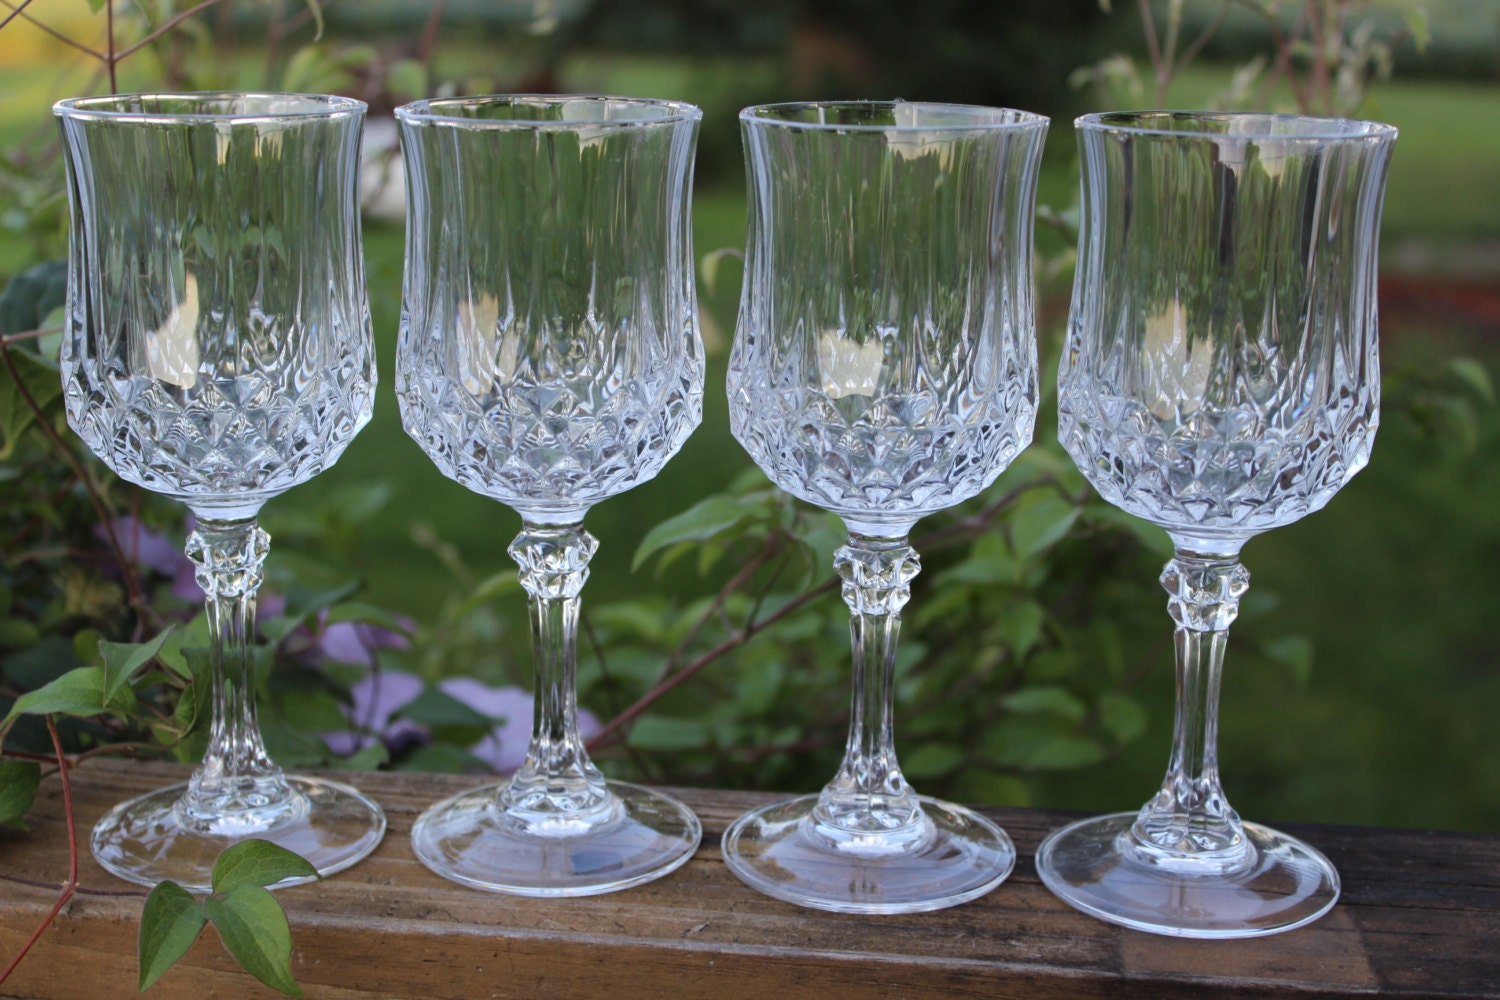 Four 4 Vintage 6 5 Inch Lead Crystal Wine Glasses By Cristal